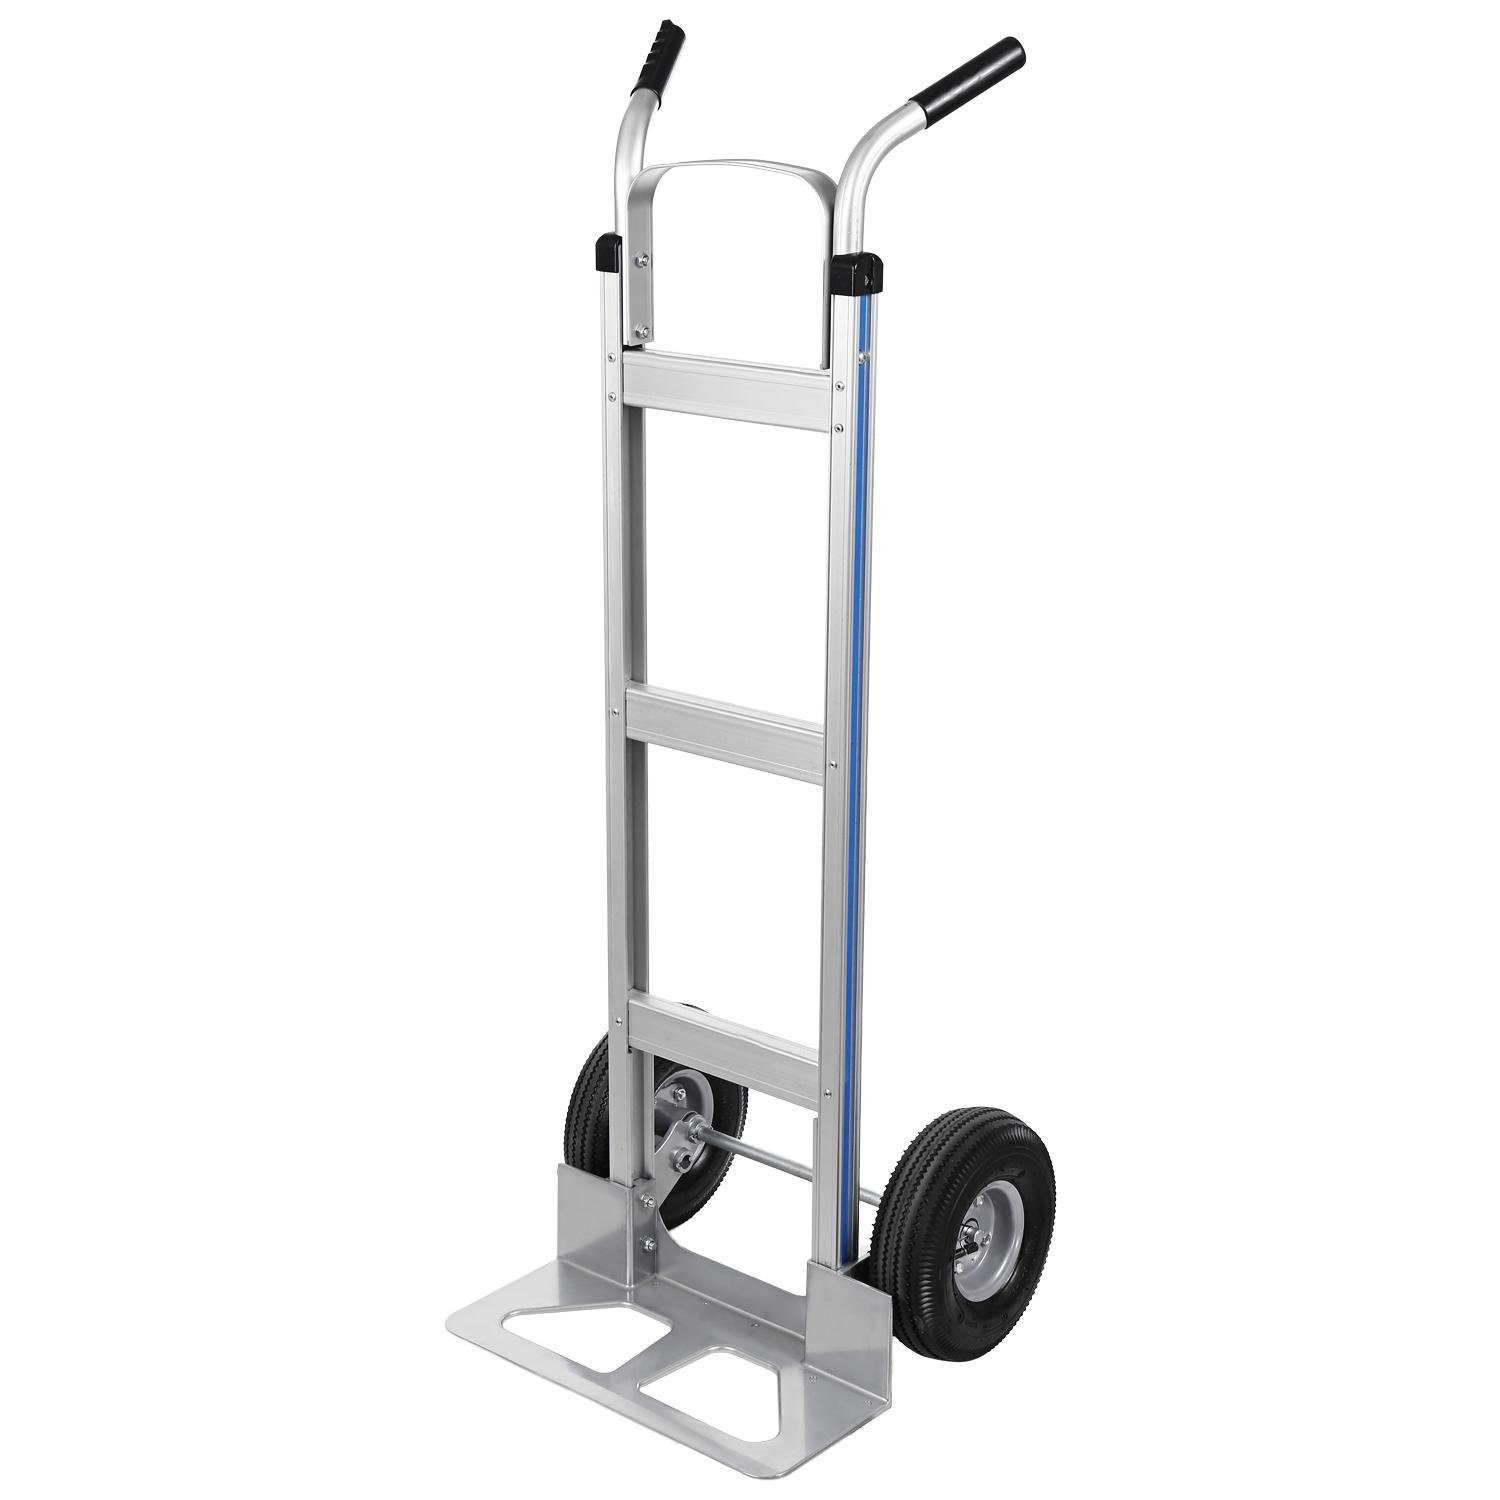 Ferty Aluminum Hand Trucks 500LBS With 2 Pneumatic Tires Dolly, Double Pistol Grip Handle Heavy Duty Trolley/Cart With 2 Wrench